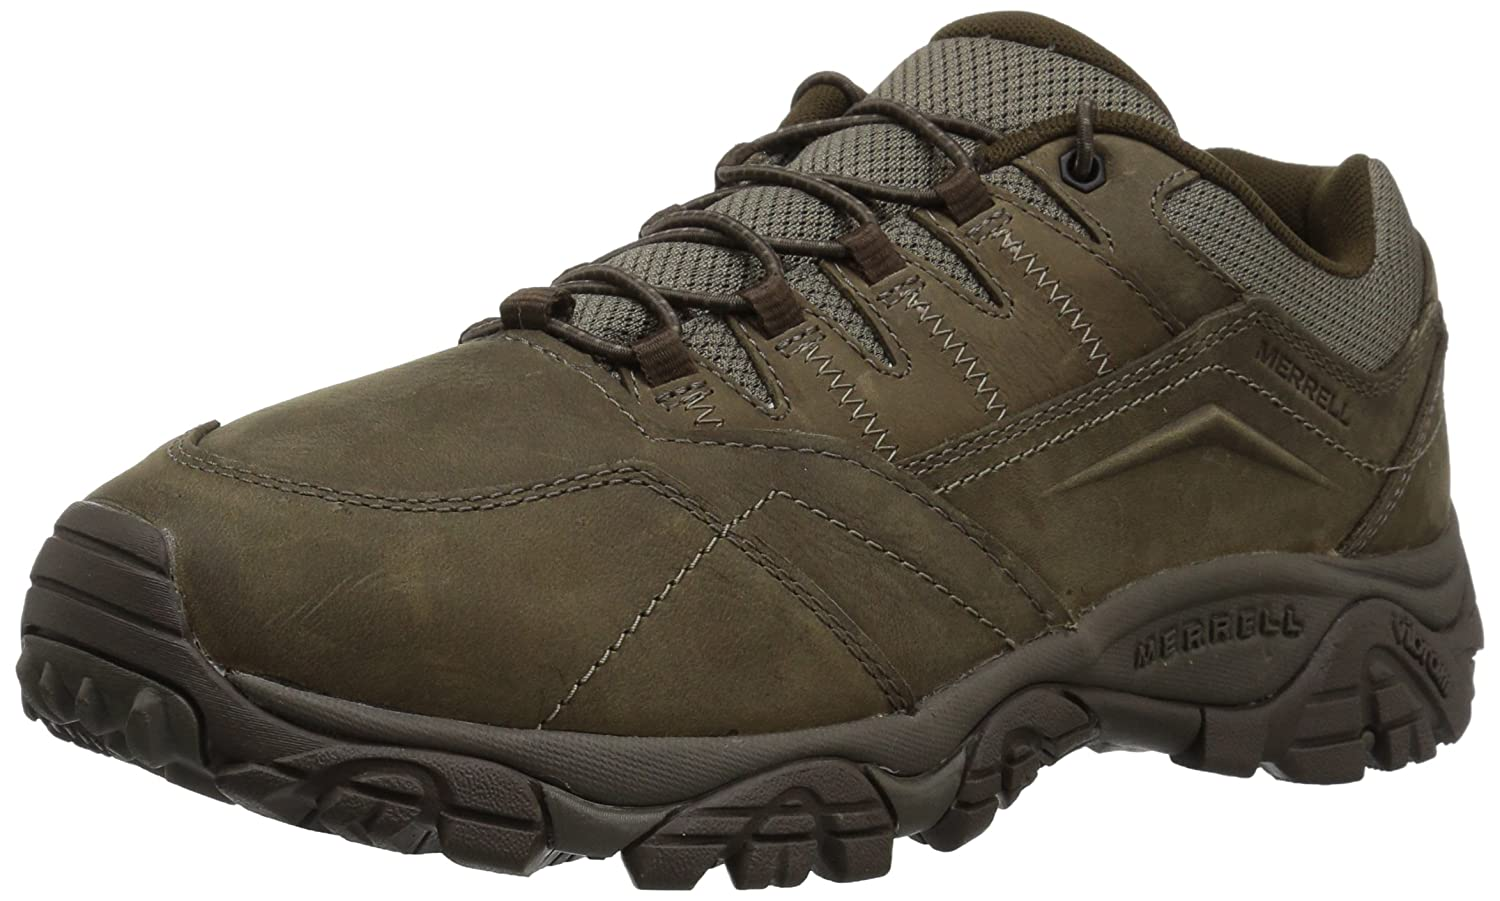 Merrell メンズ Moab Adventure Stretch B071PF5Y5F 14 D(M) US|ボルダー ボルダー 14 D(M) US